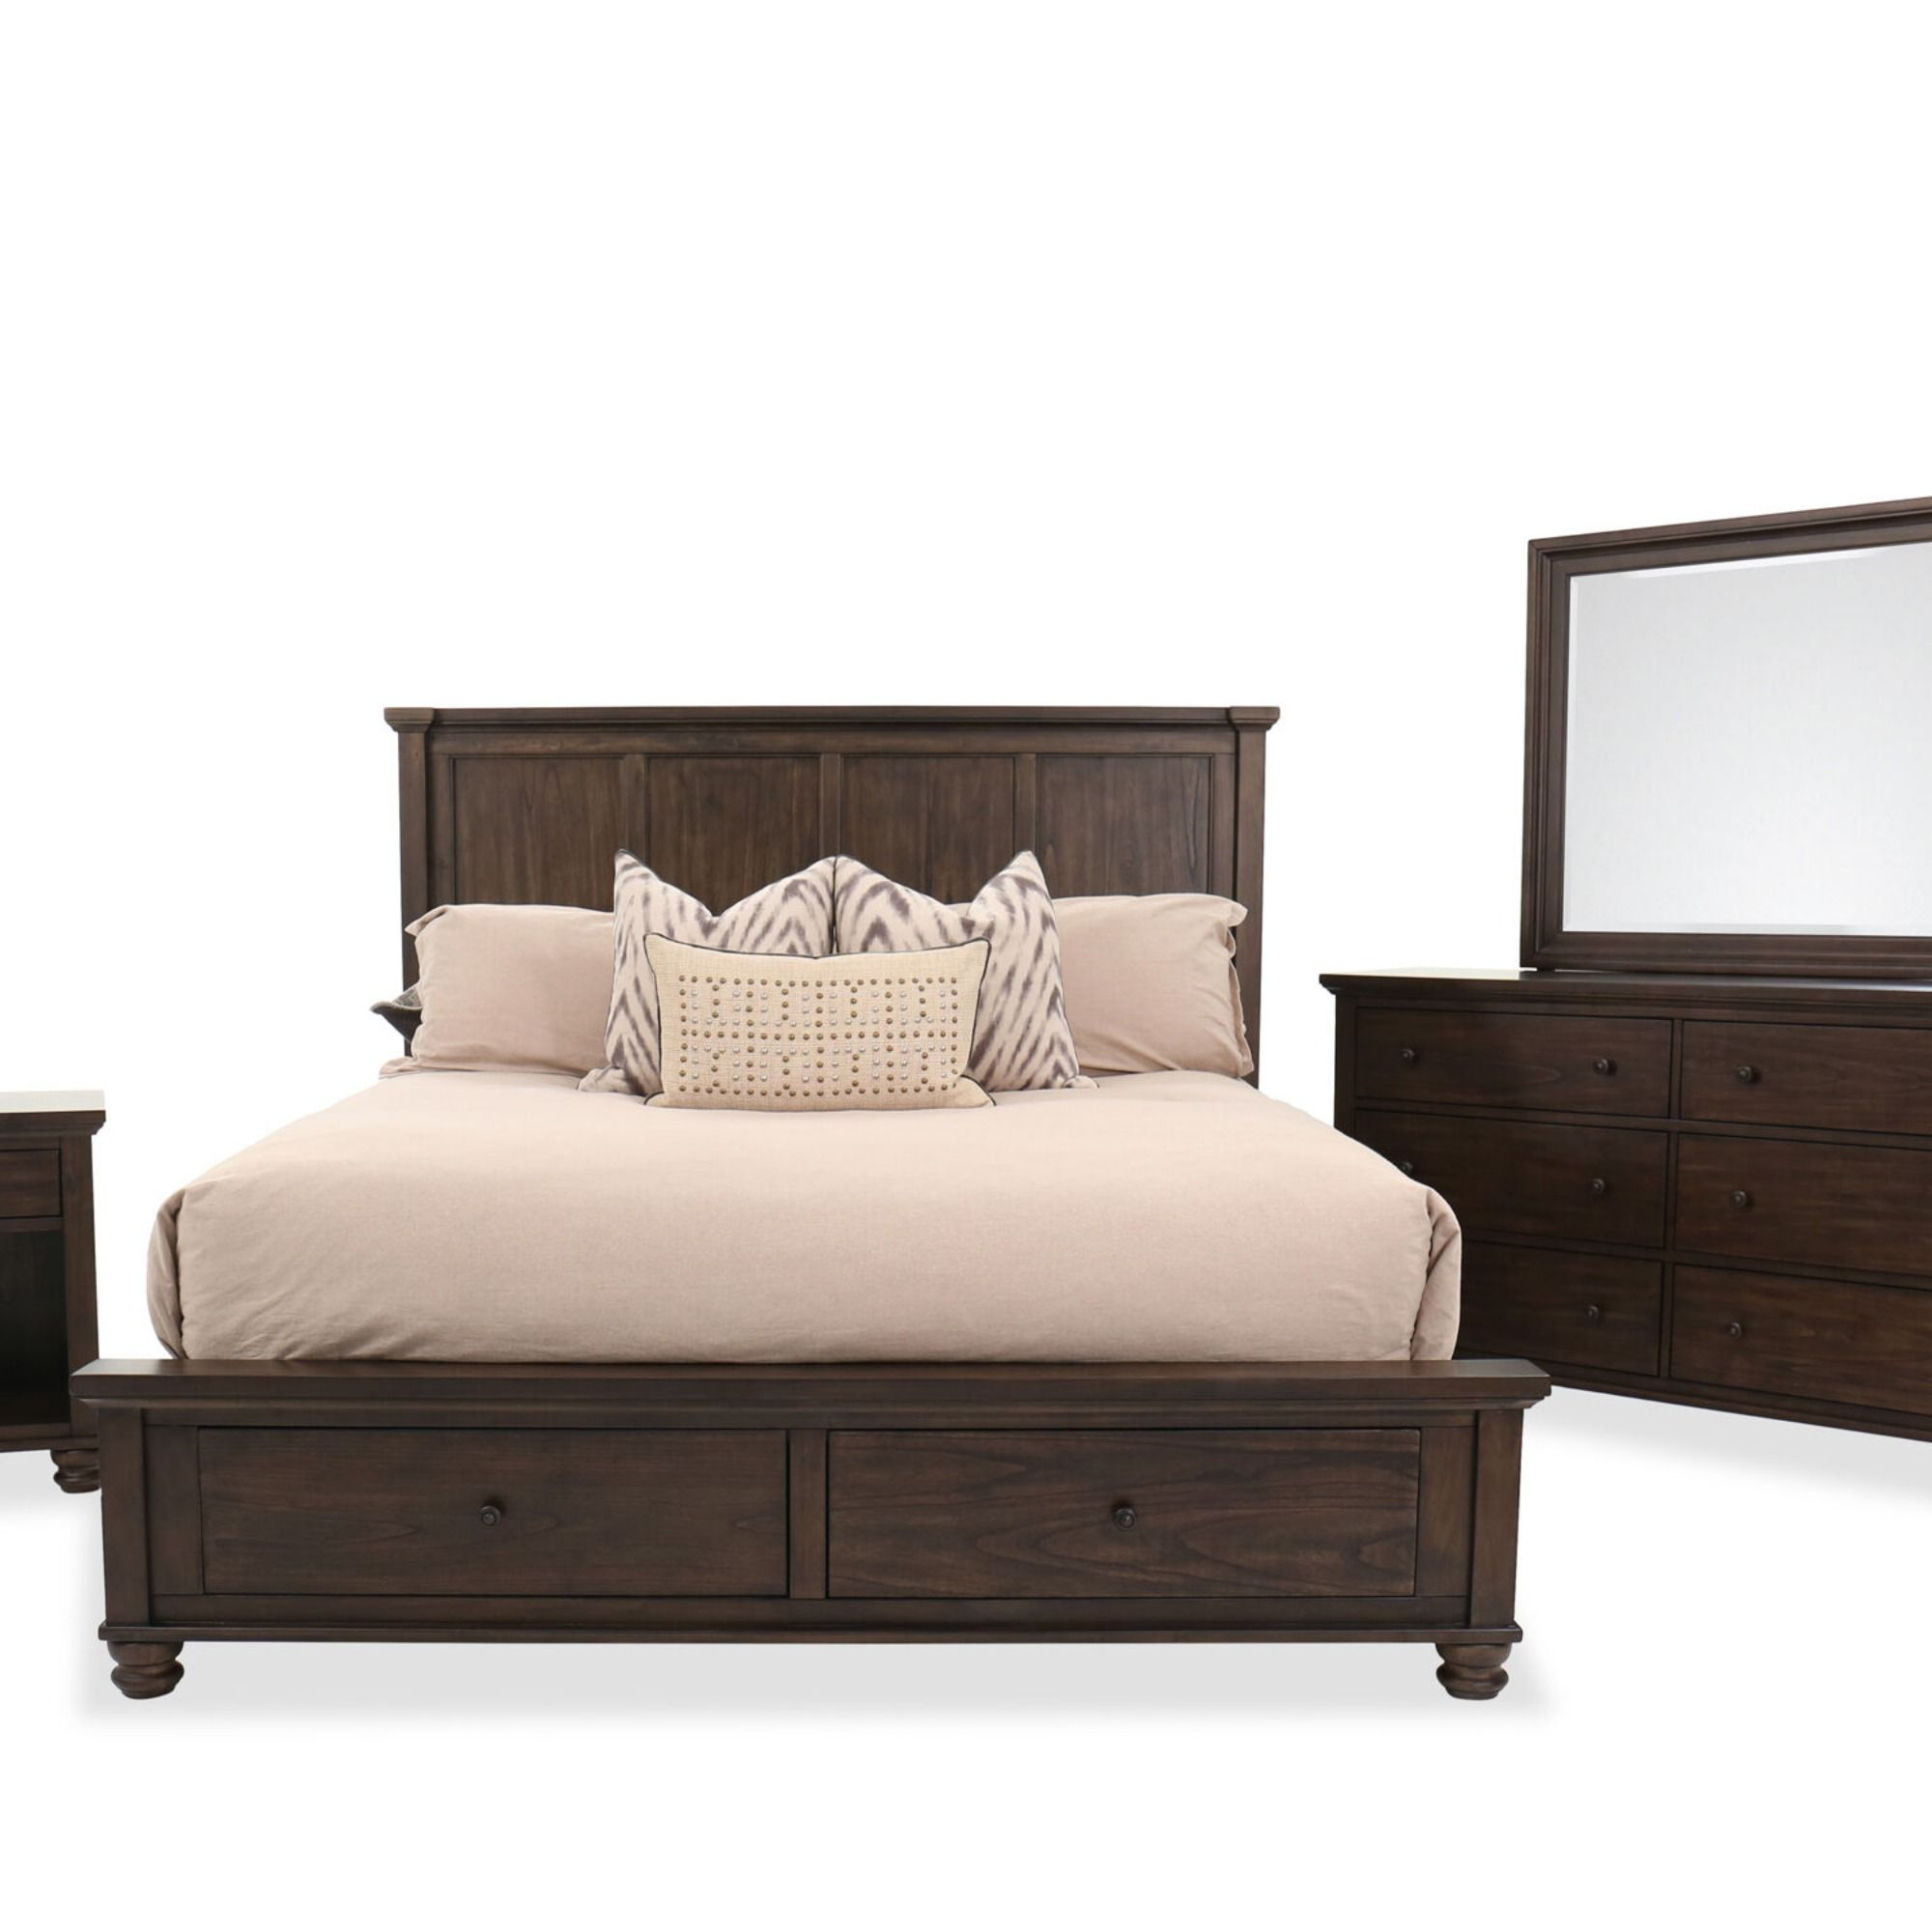 Beds I like from Mathis Brothers Home, Bed, Home decor